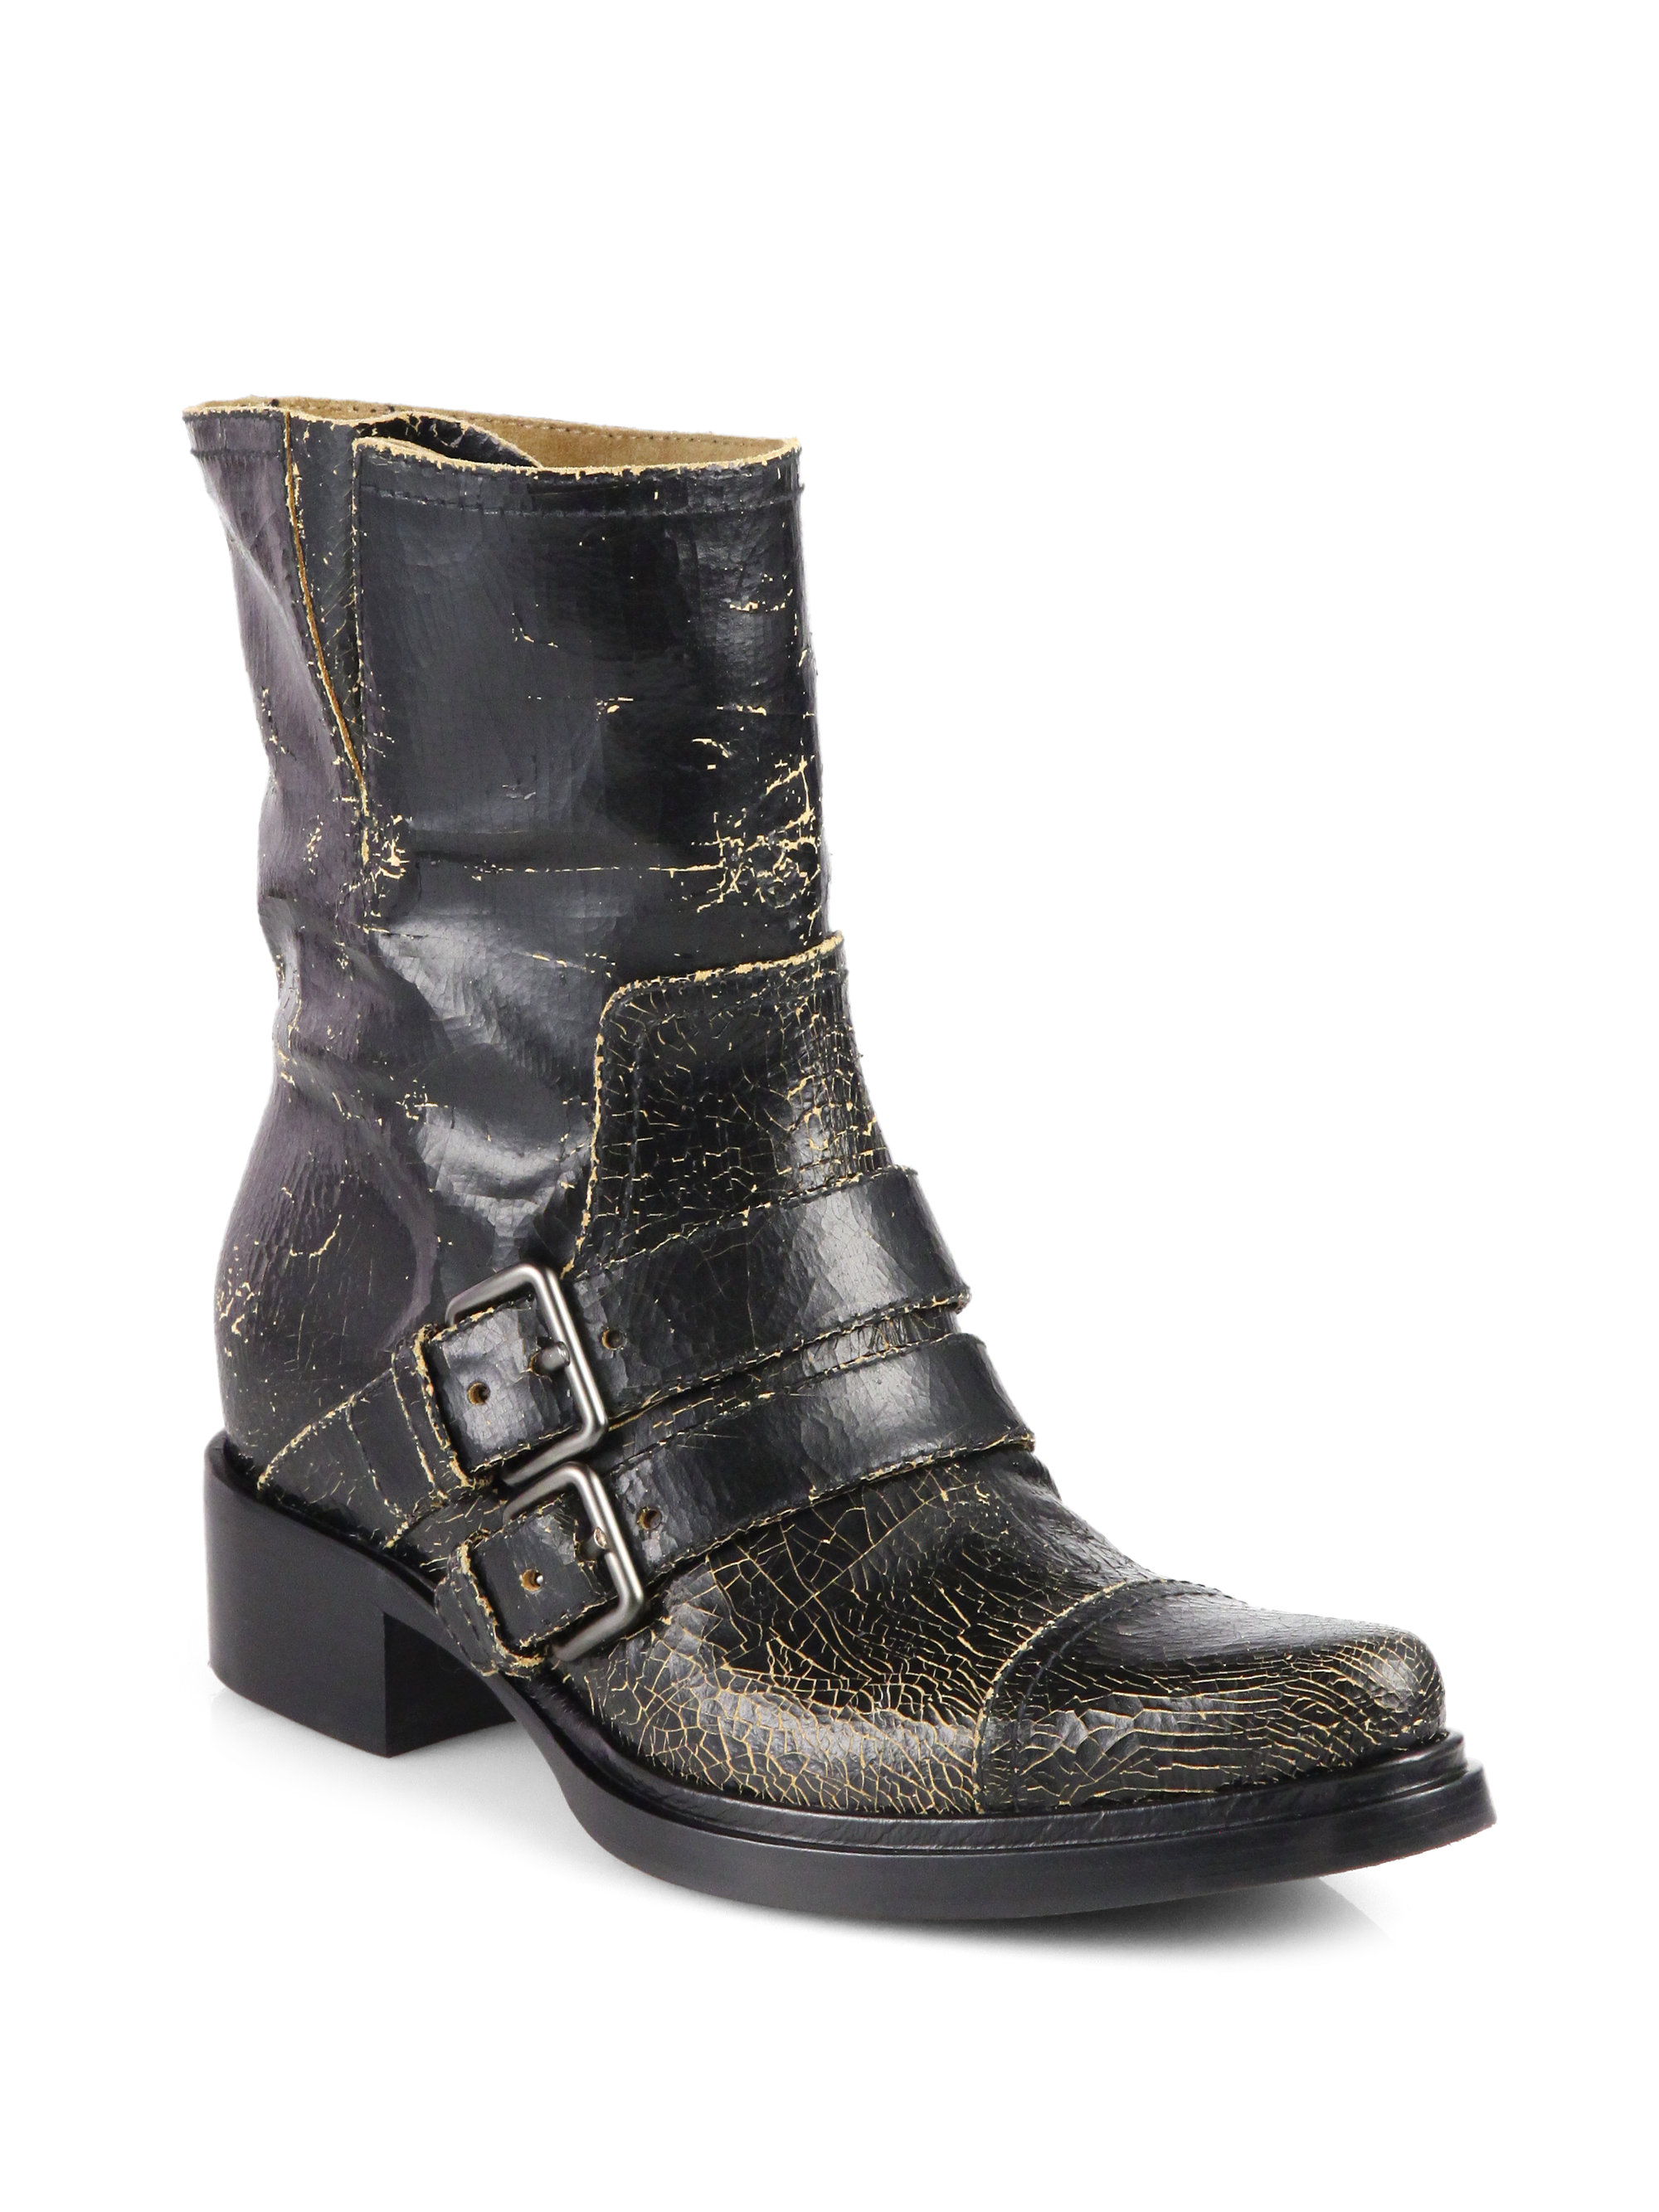 Lyst Miu Miu Distressed Leather Motorcycle Boots In Black